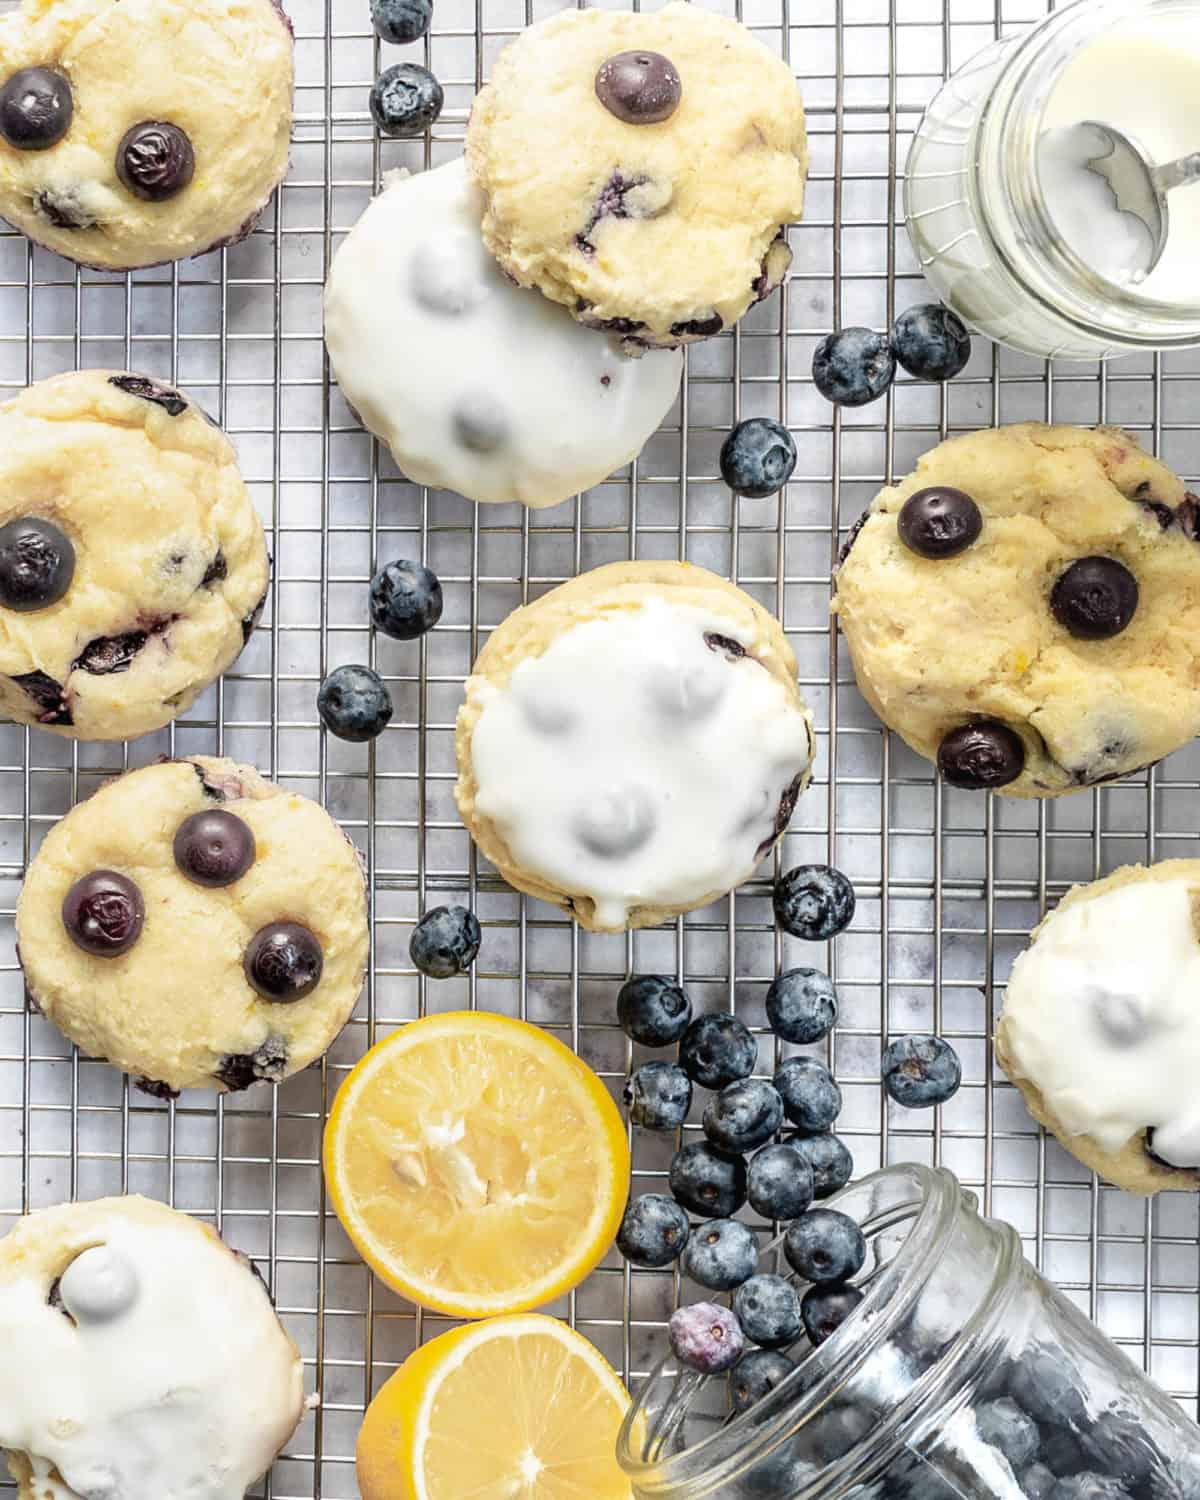 Several blueberry cookies with lemon on a cooling rack.